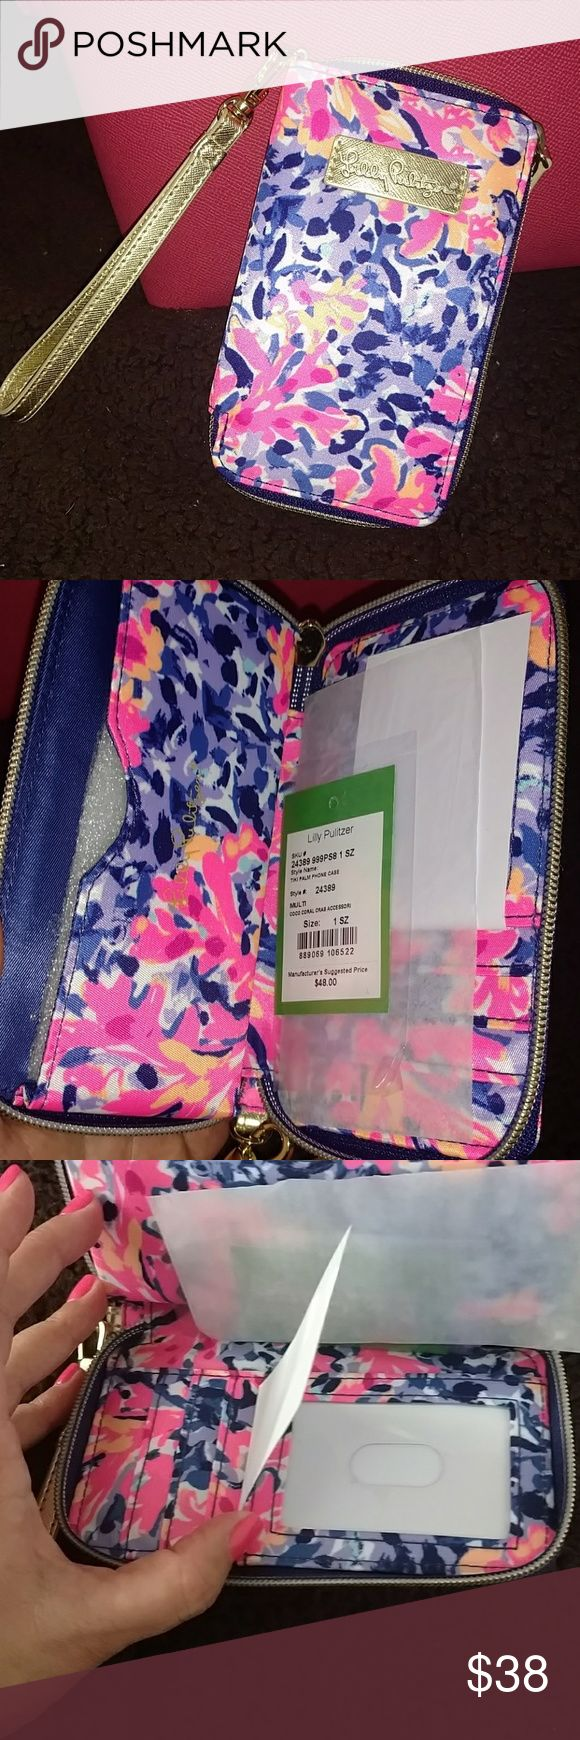 Lilly Pulitzer Tiki Palm phone case NWT cute phone case with card slots for IDs and credit cards in multi Coco coral crab pattern Lilly Pulitzer Accessories Phone Cases